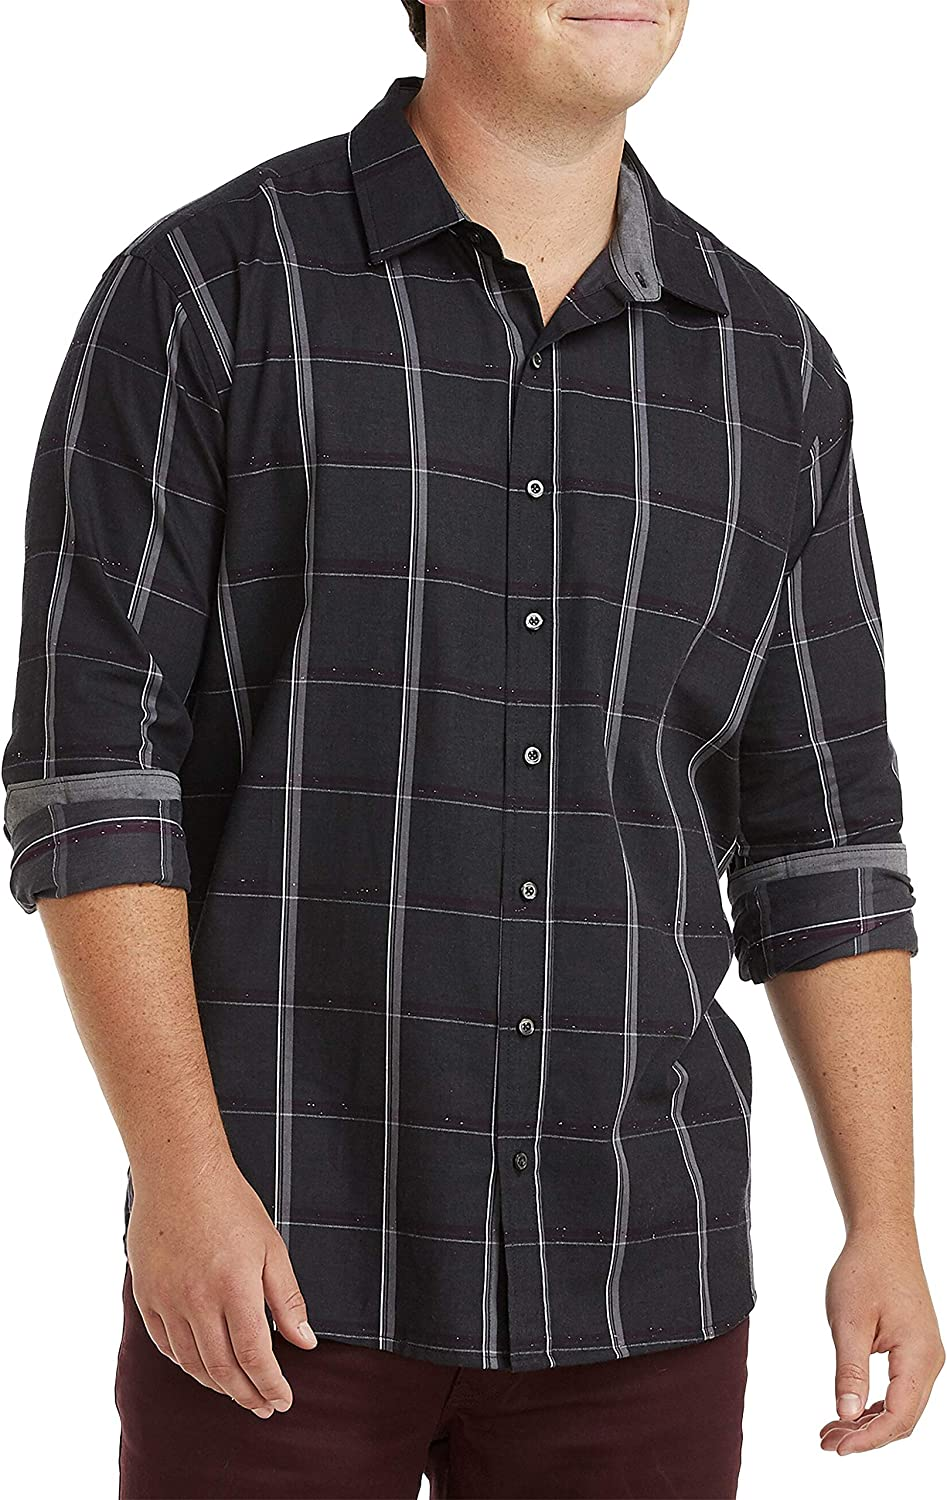 DXL Synrgy Big and Tall Textured Check Sport Shirt, Grey